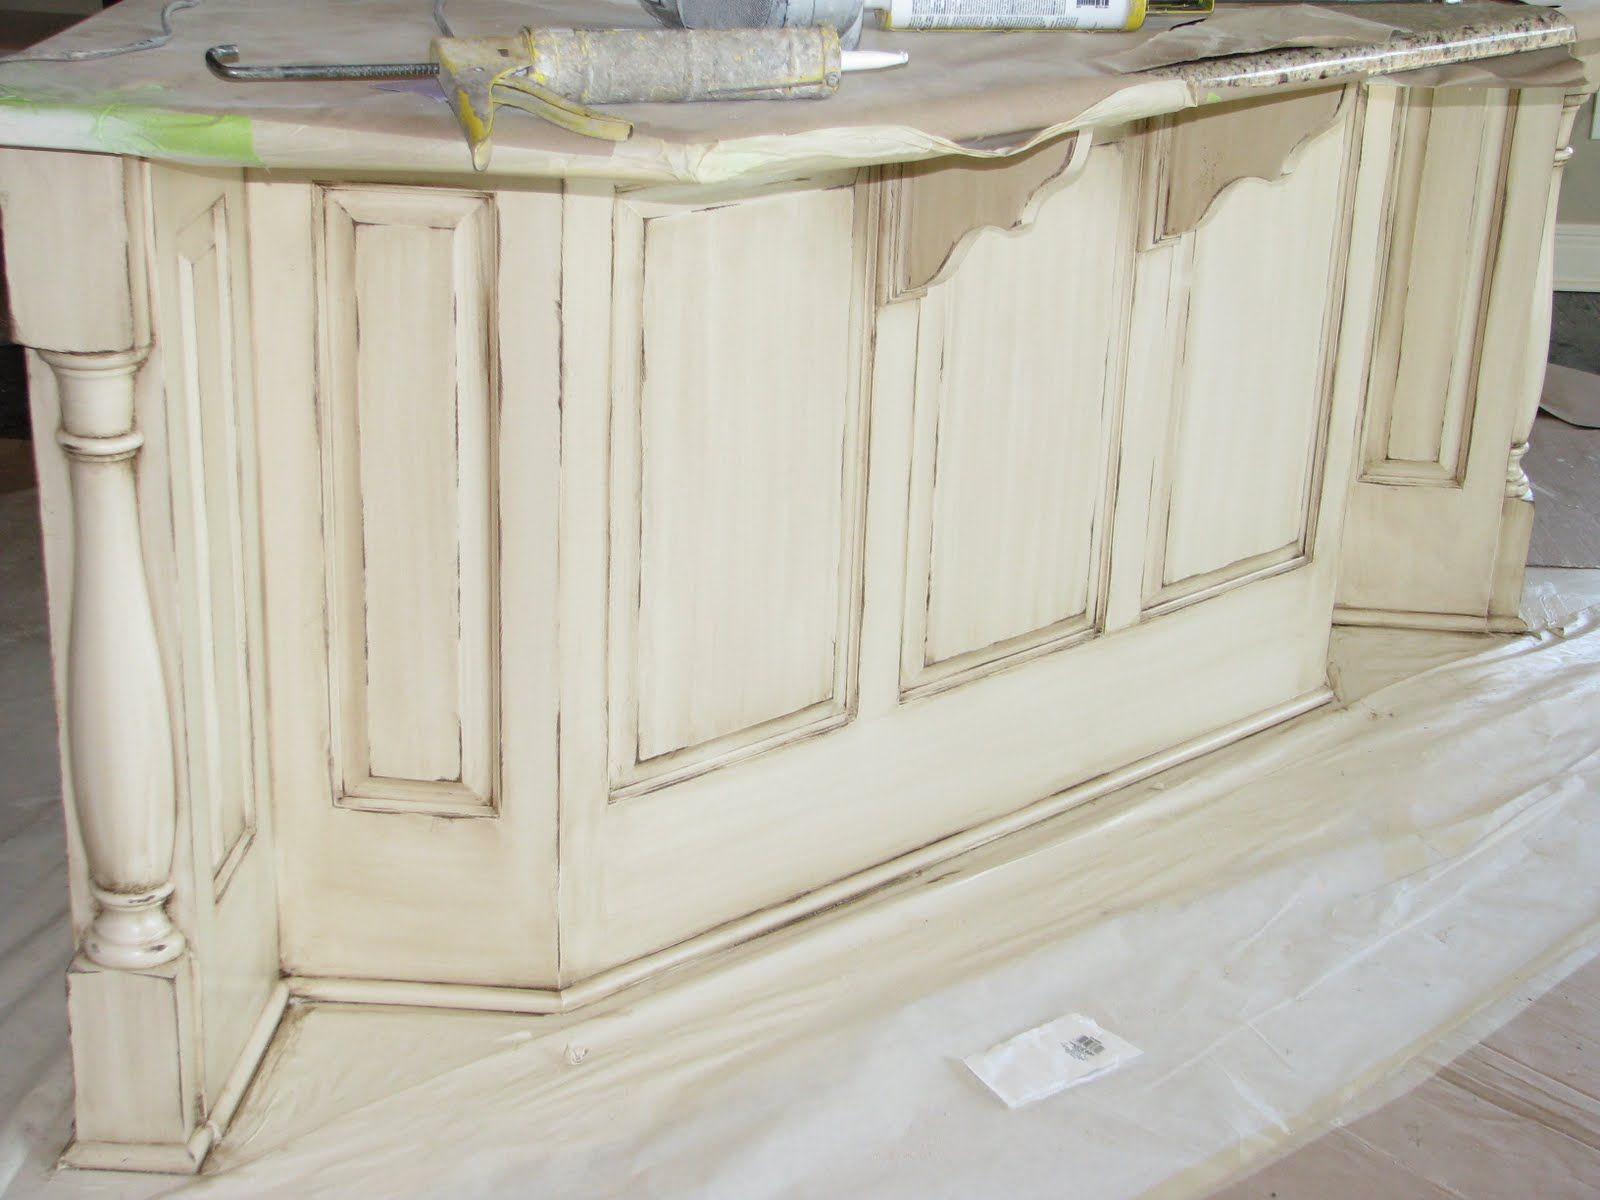 distressed kitchen cabinets Lori Caromal Colour s Her Oak Kitchen Cabinets Kitchen cabinets Cabinets and Look at